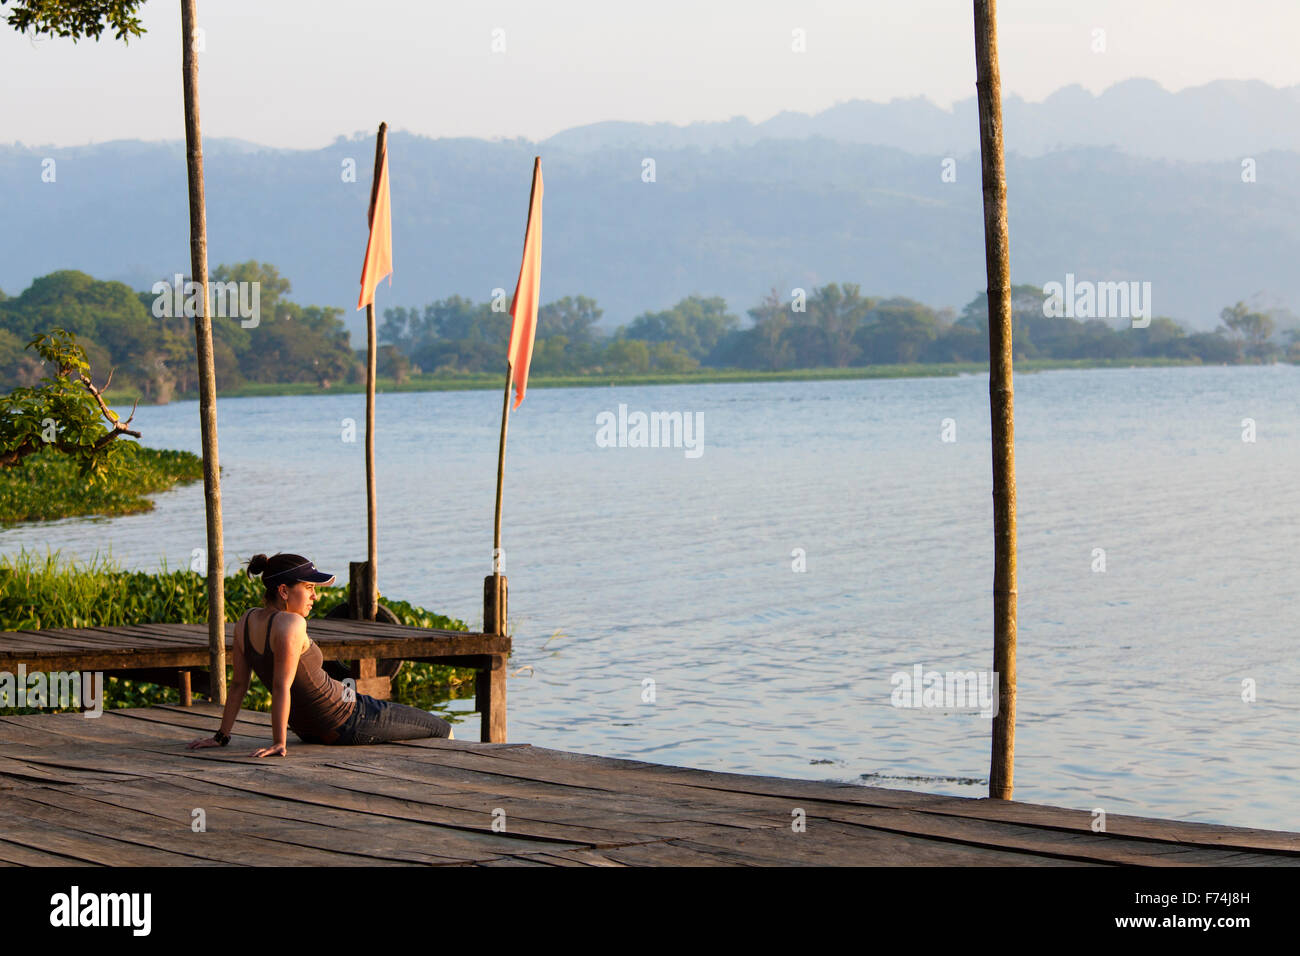 A young woman sits on the docks of Catemaco Lake in Veracruz, Mexico. - Stock Image